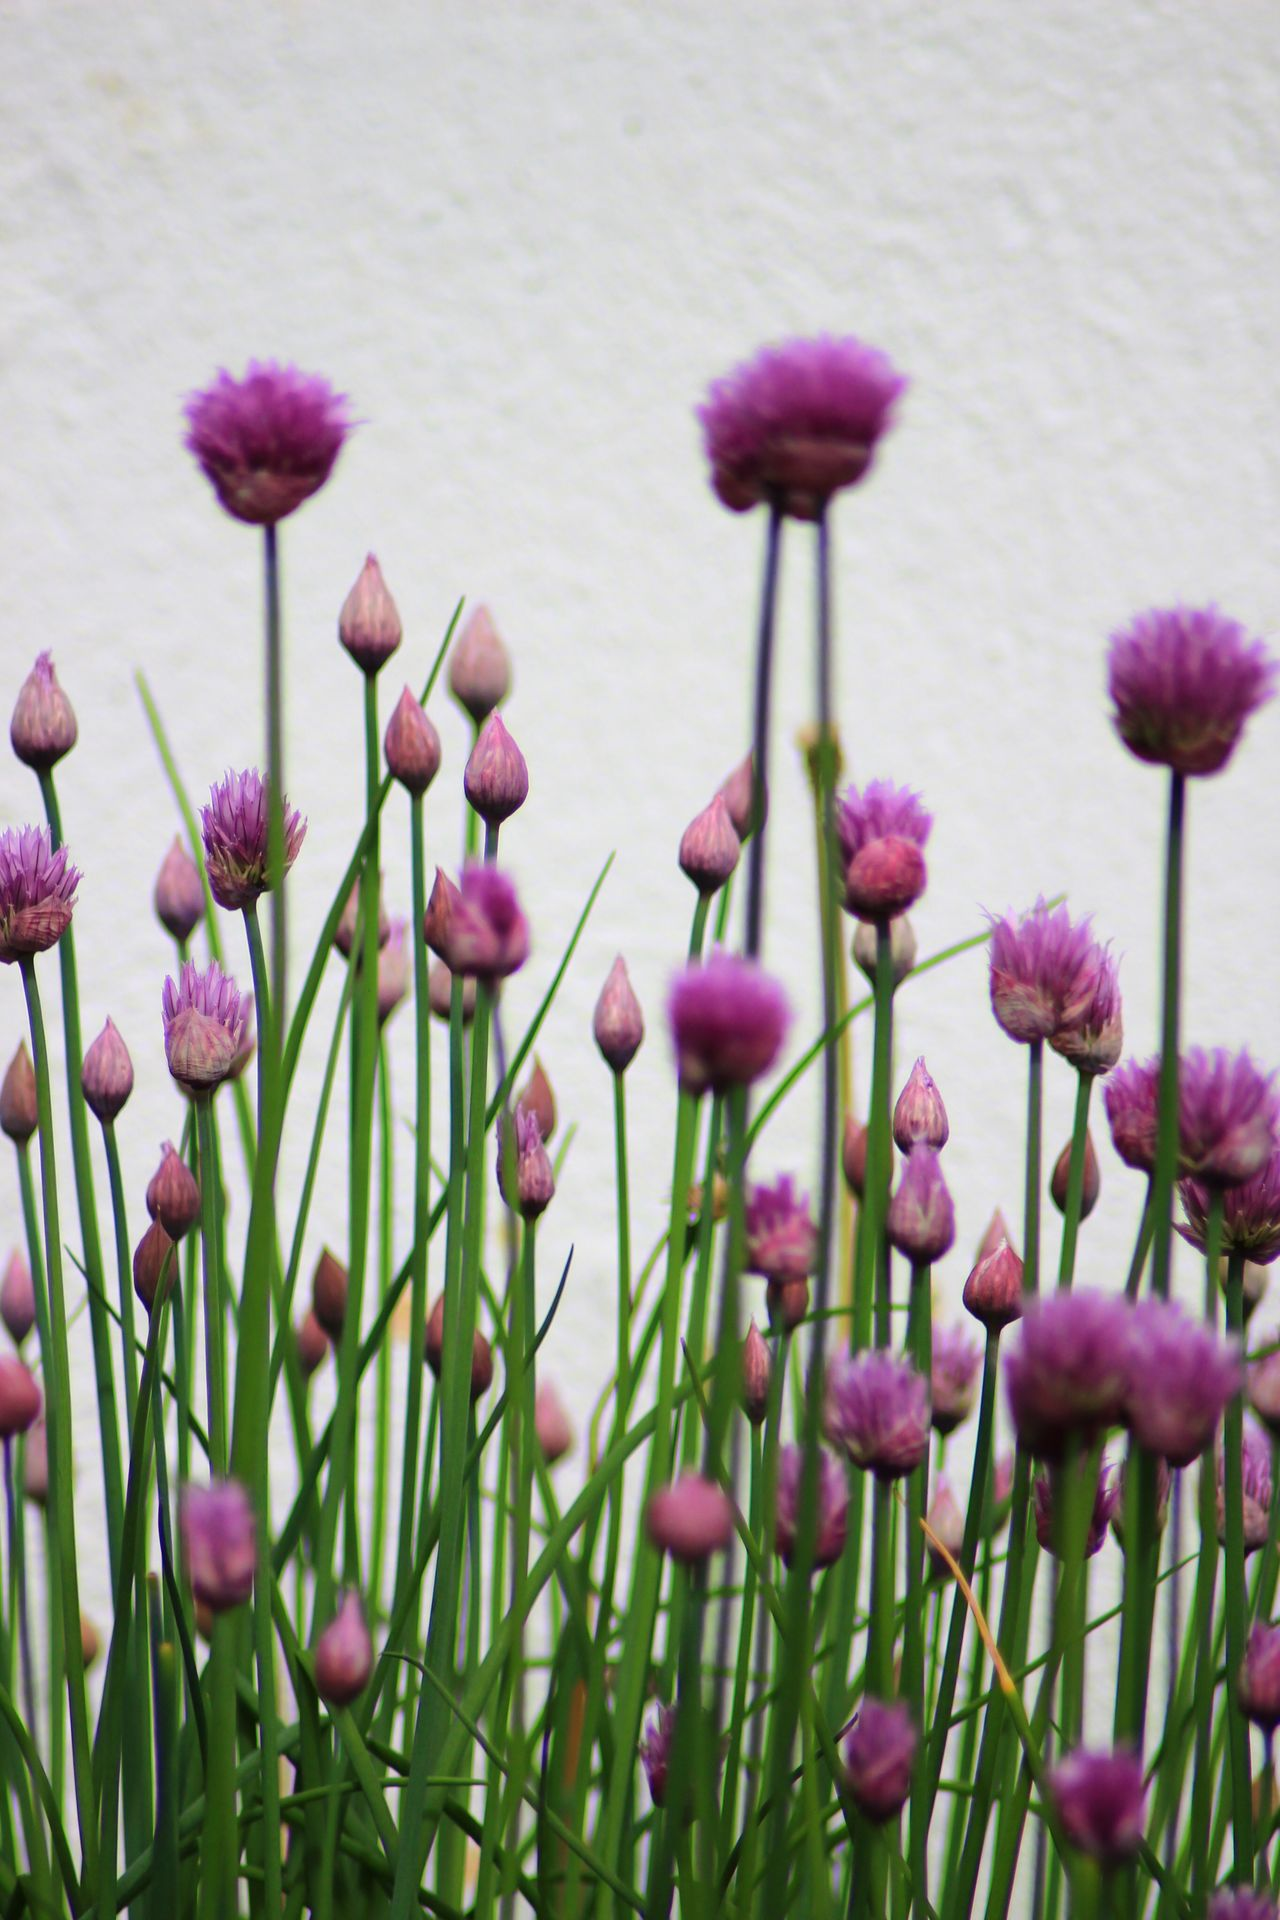 Growth Flower Nature Plant Purple No People Beauty In Nature Blooming Close-up Outdoors Fragility Freshness Day Gressløk Chives Food Herbes